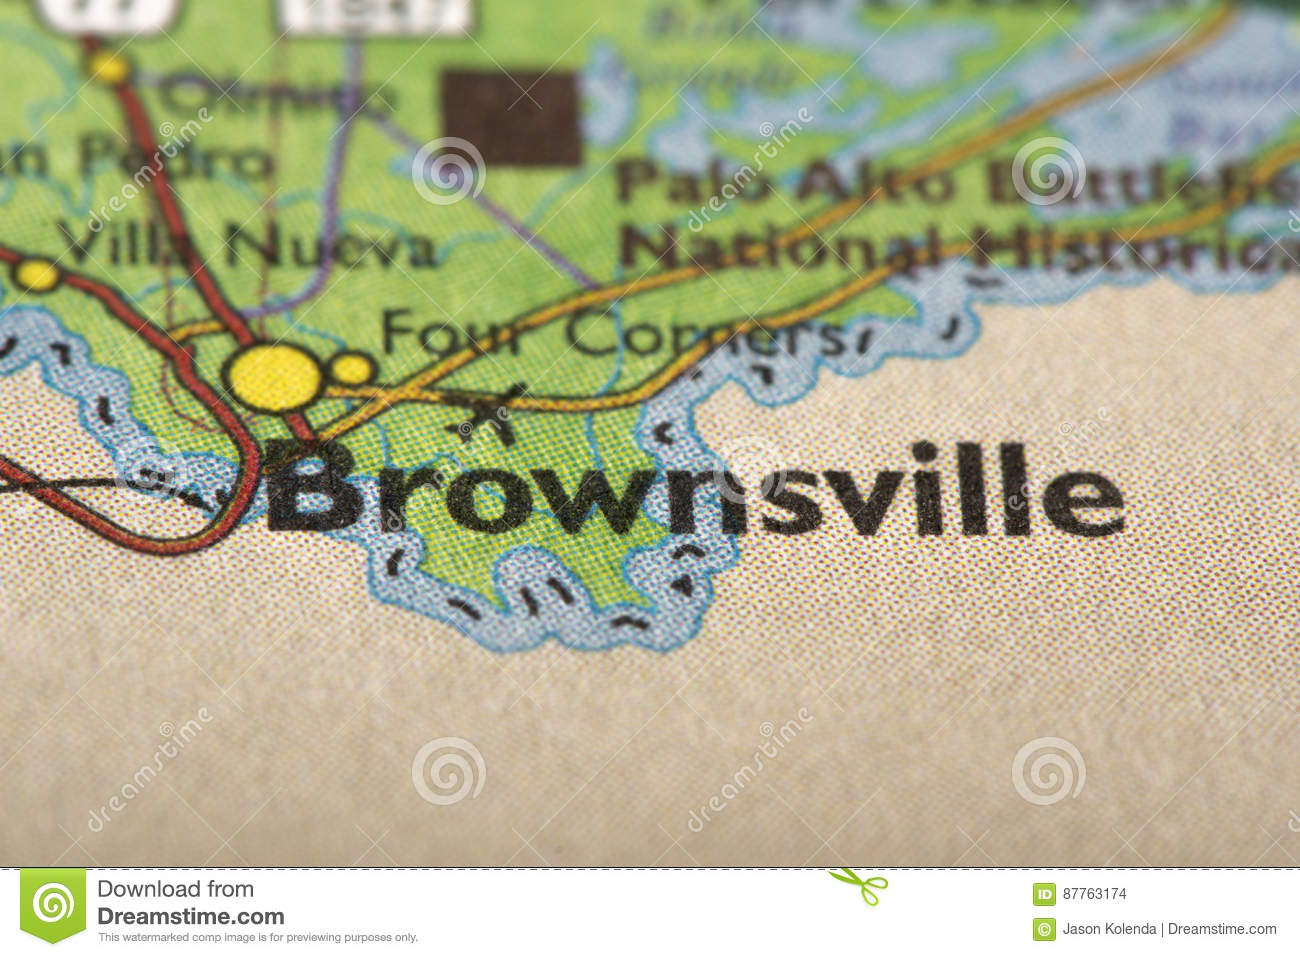 Brownsville Texas On Map Stock Photo Image Of Print 87763174